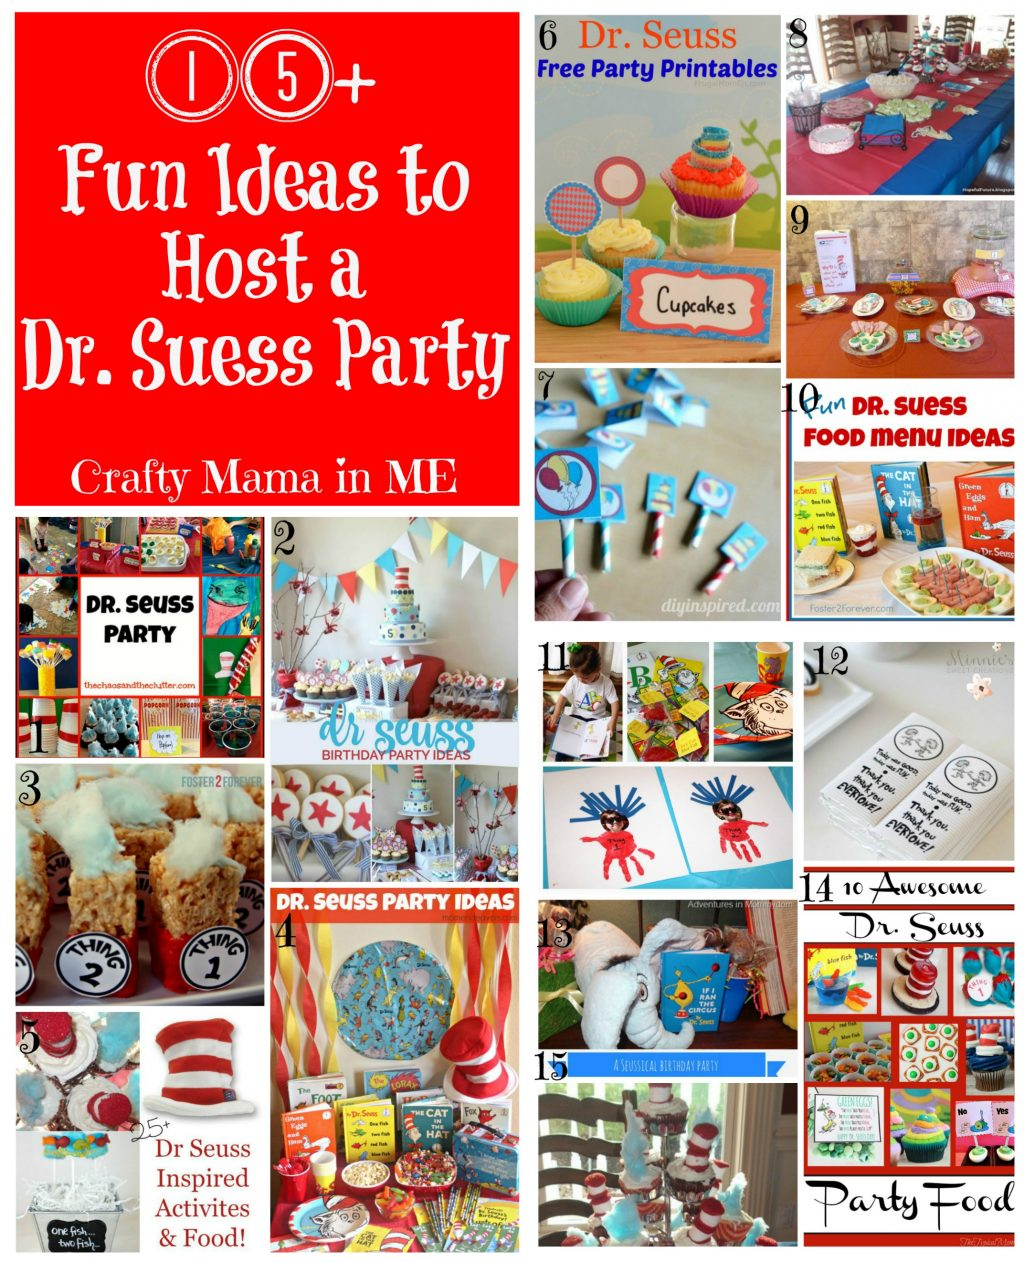 Fun Roundup of Ideas to Host a Dr. Suess Party